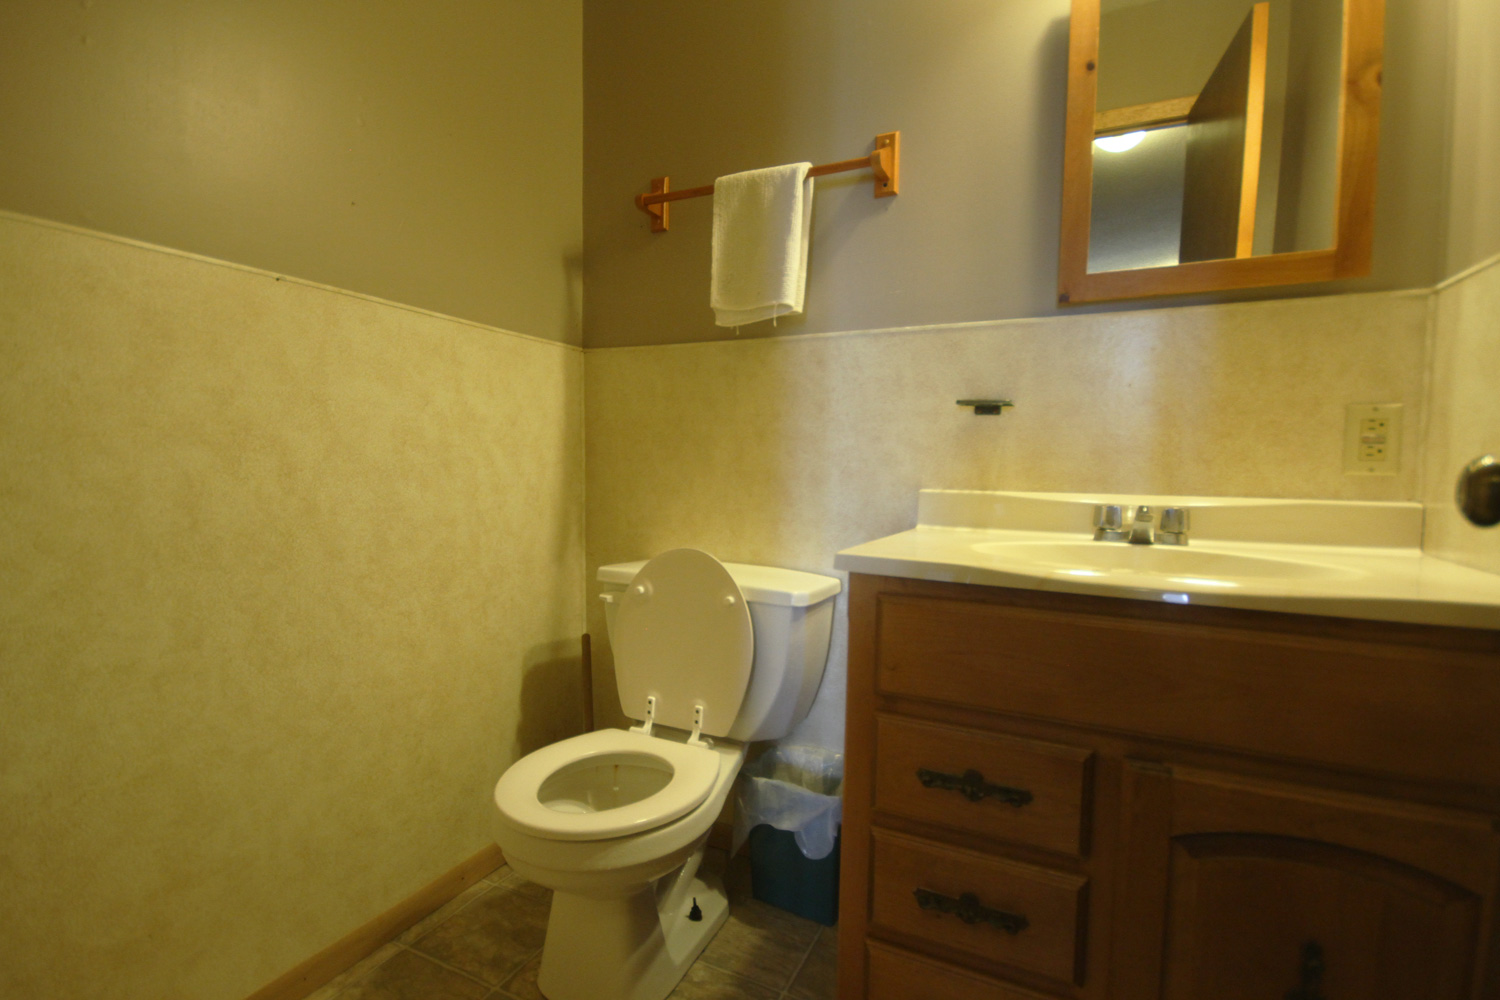 1/2 bath just steps away from the beds